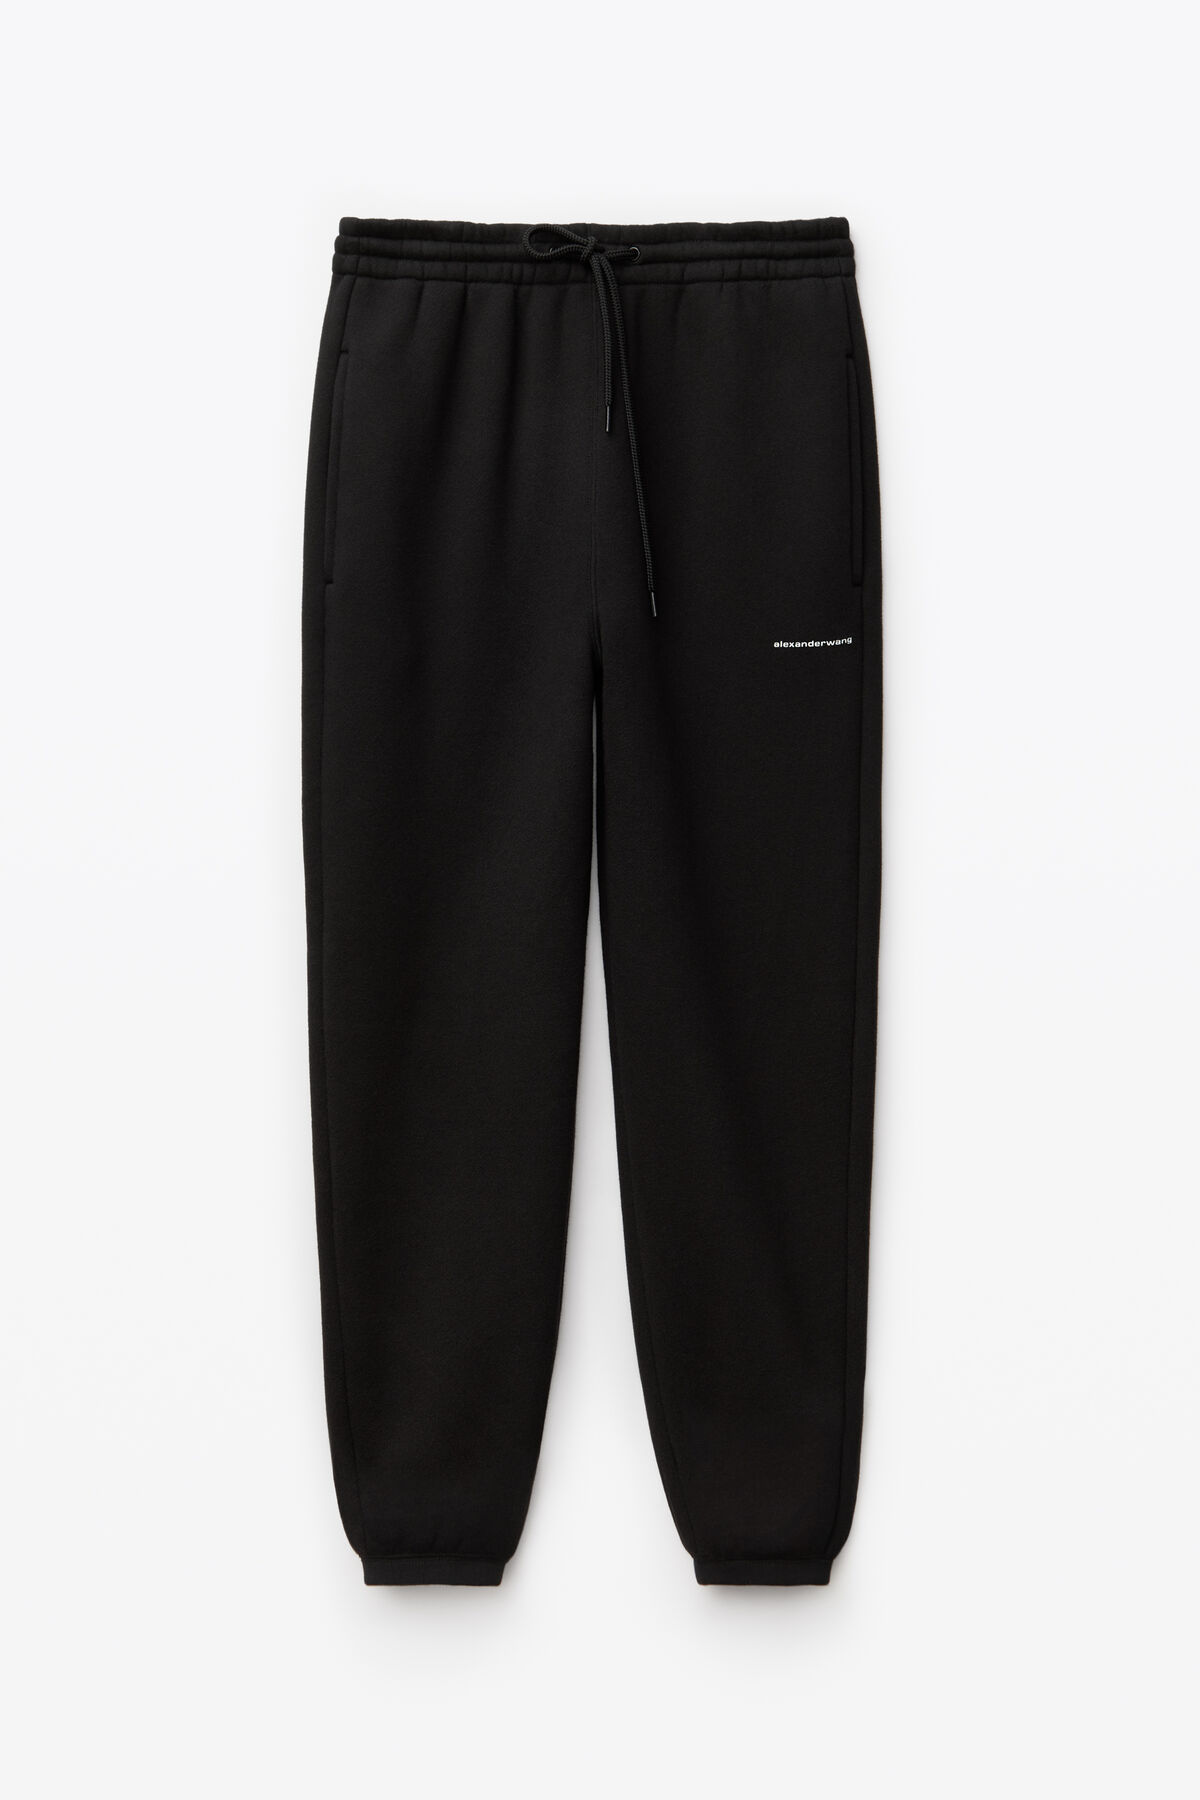 unisex dense fleece sweatpants by Alexander Wang, available on alexanderwang.com for $245 Kylie Jenner Pants SIMILAR PRODUCT